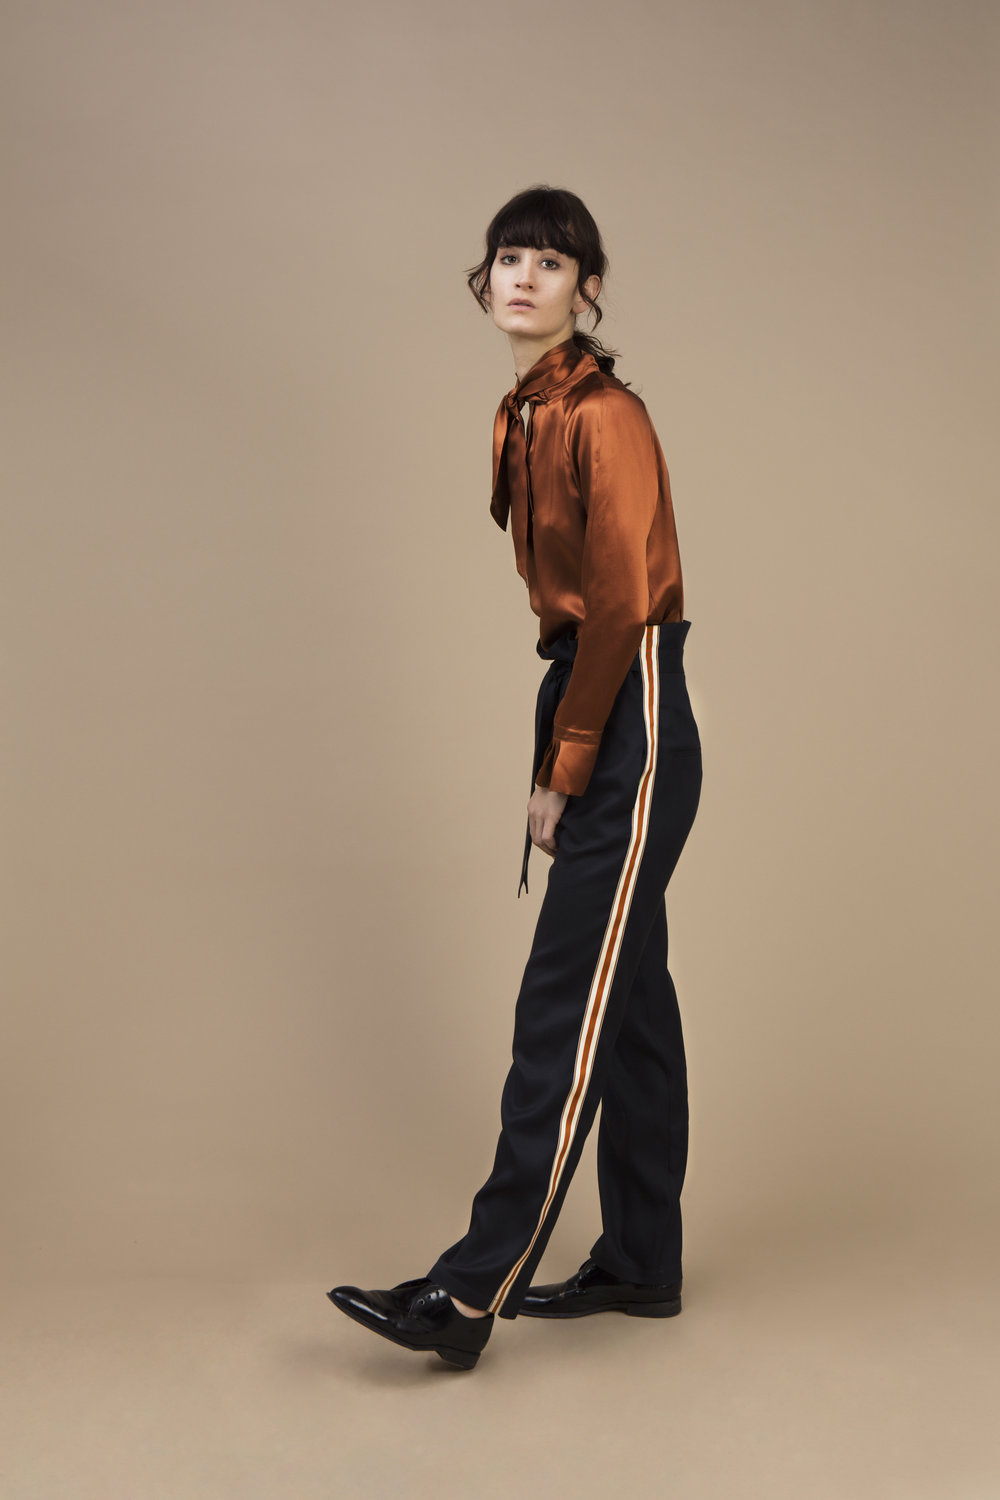 Crepe satin silk Ascot top - amber brown and morrocan crepe silk Highwaist pant — Black